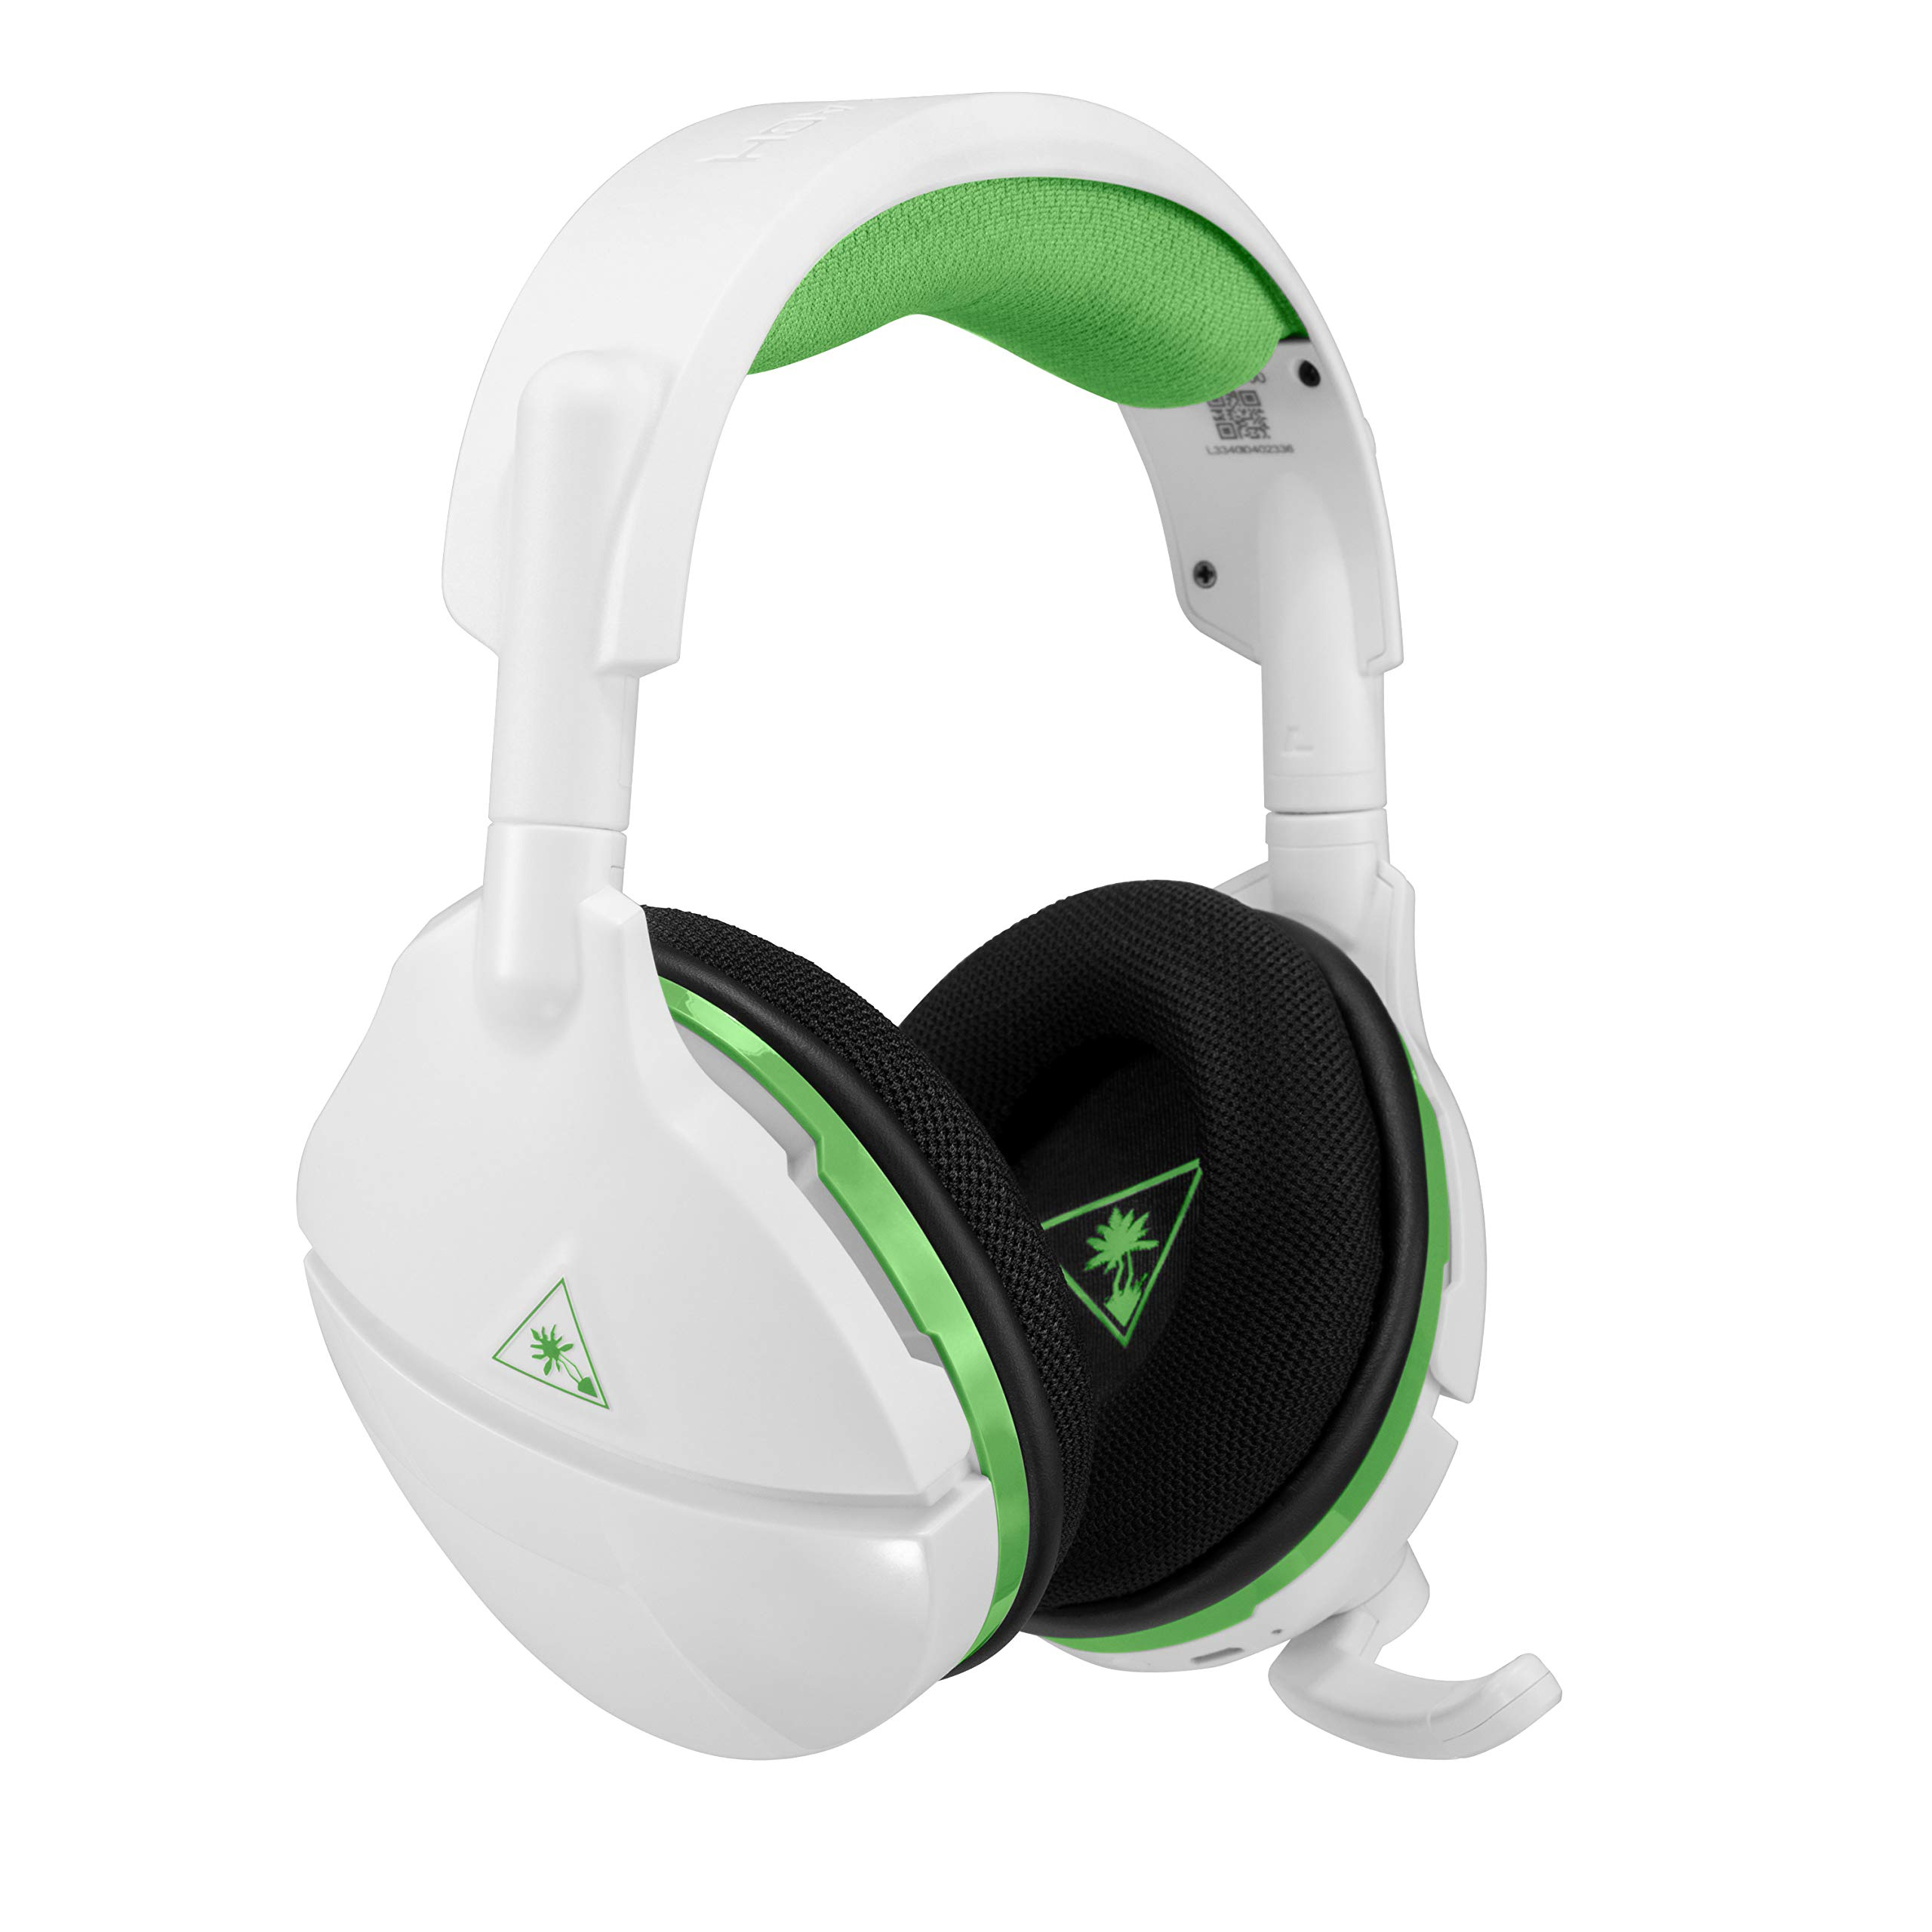 Turtle Beach Stealth 600 White Wireless Surround Sound Gaming Headset for Xbox One - Xbox One by Turtle Beach